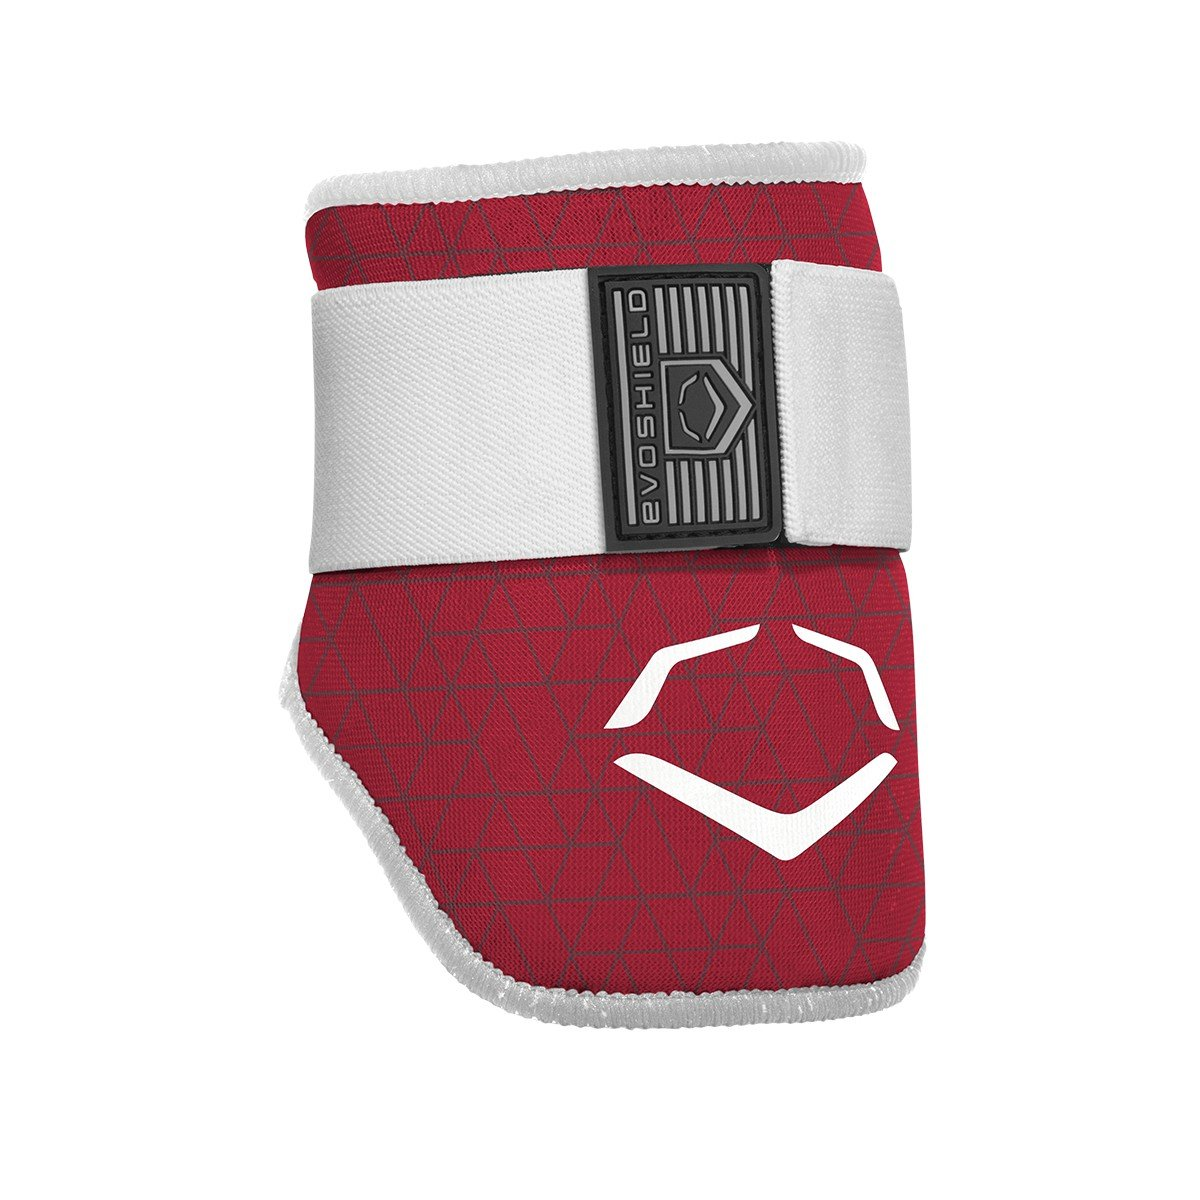 EvoShield EvoCharge Batter's Elbow Guard - Adult, Maroon